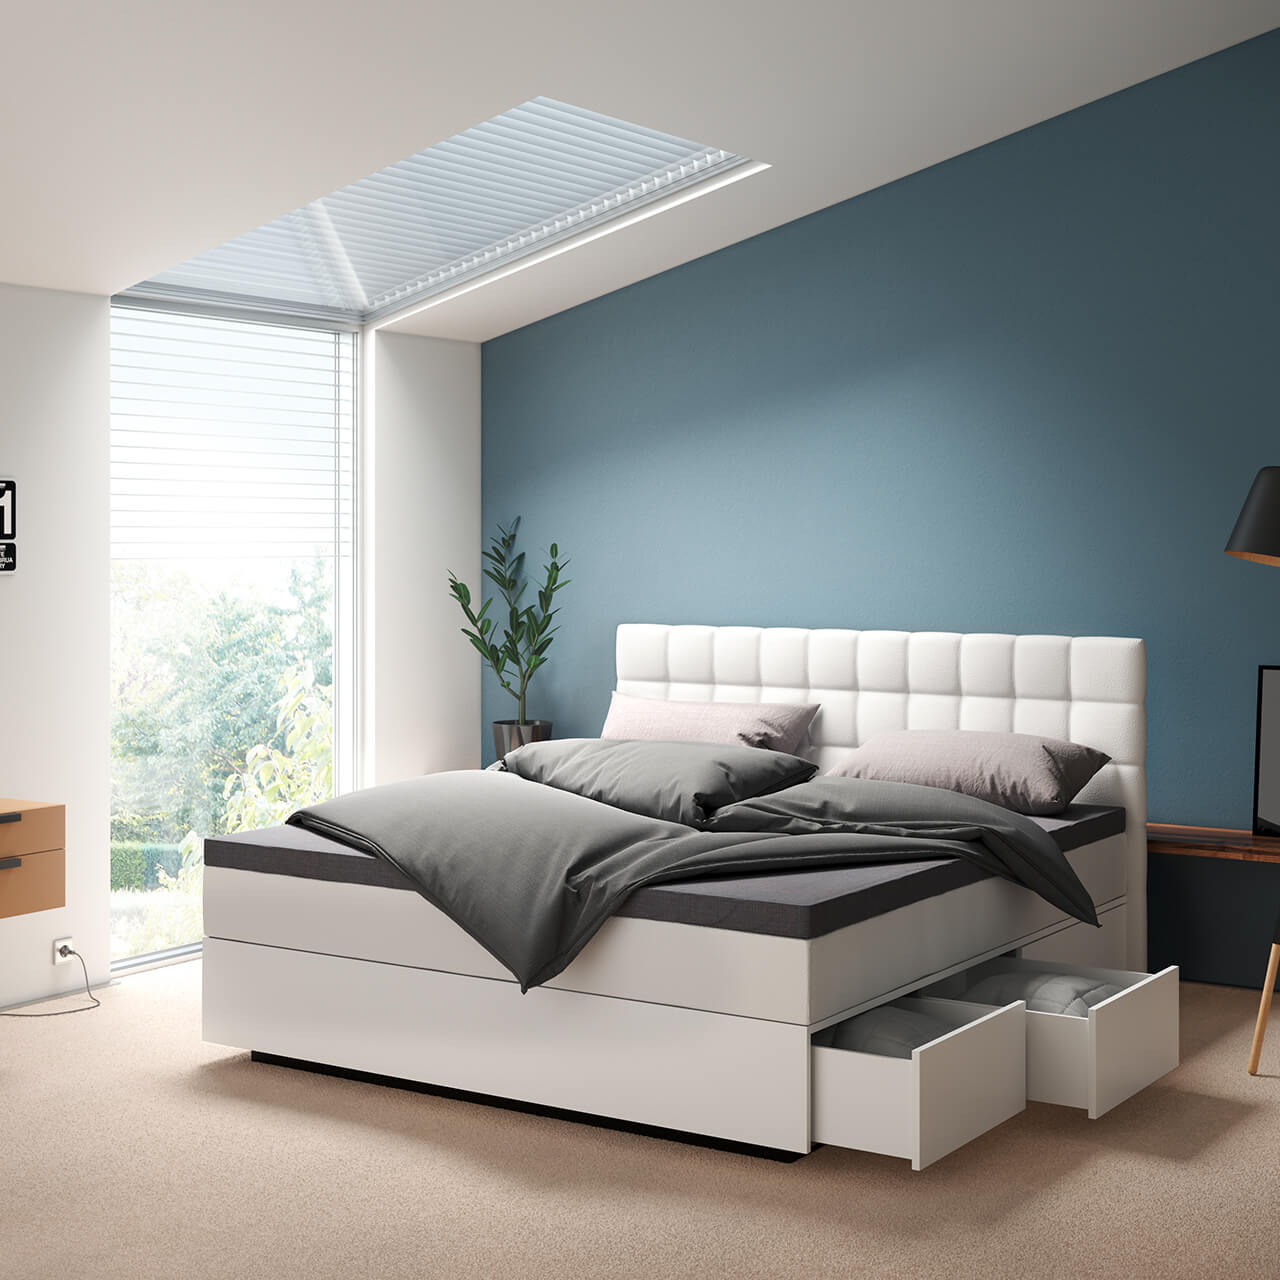 suma boxspring mit schubkasten boxspring funktion. Black Bedroom Furniture Sets. Home Design Ideas